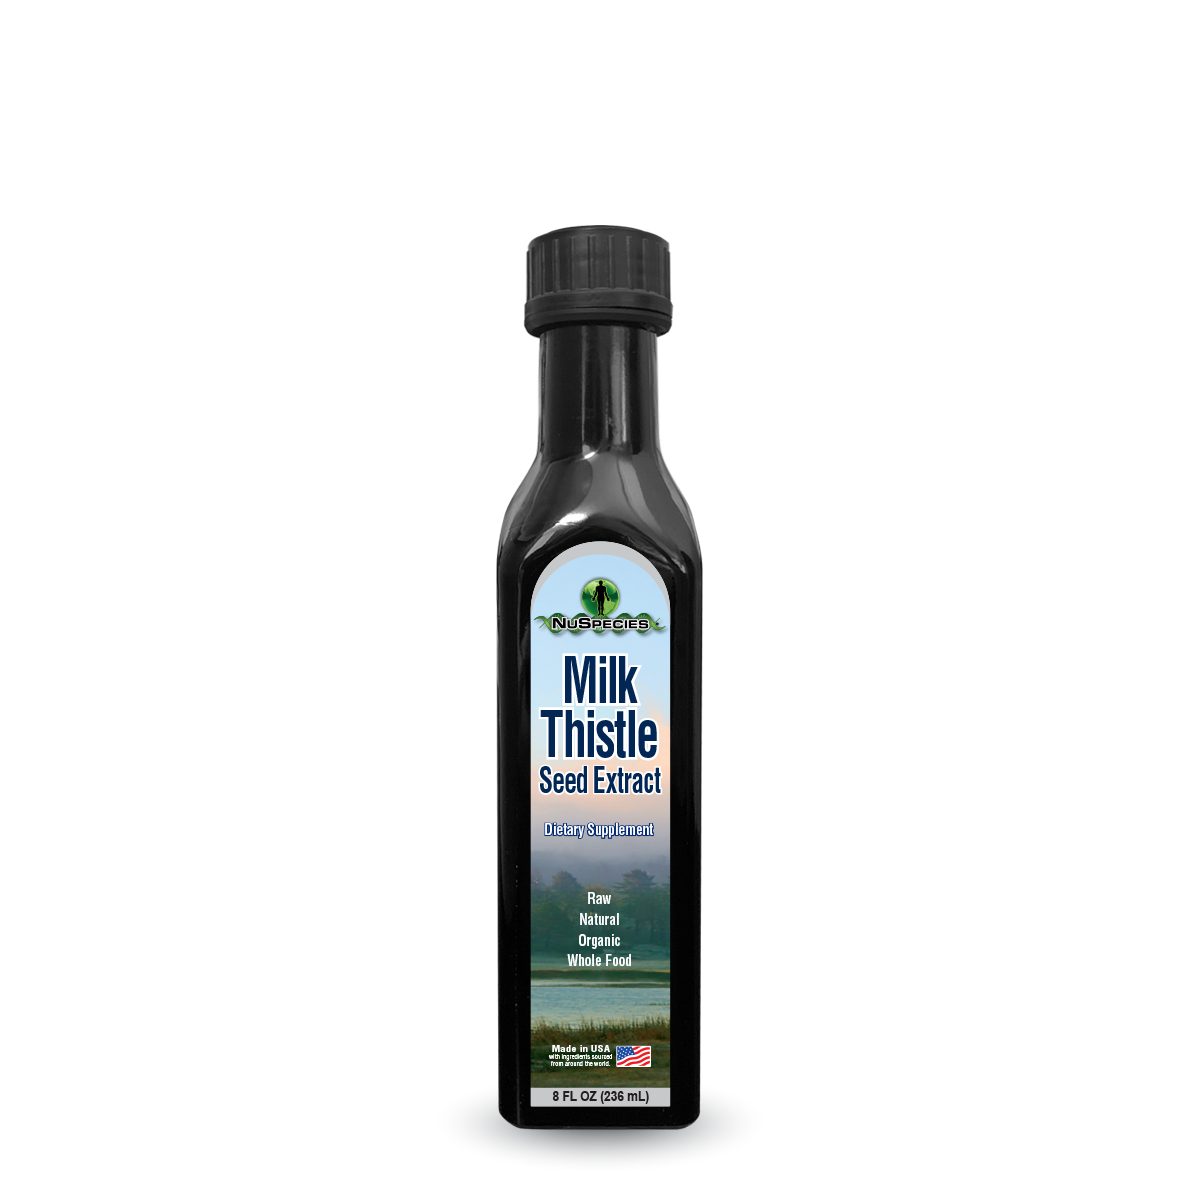 Milk Thistle Seed Extract 8 oz